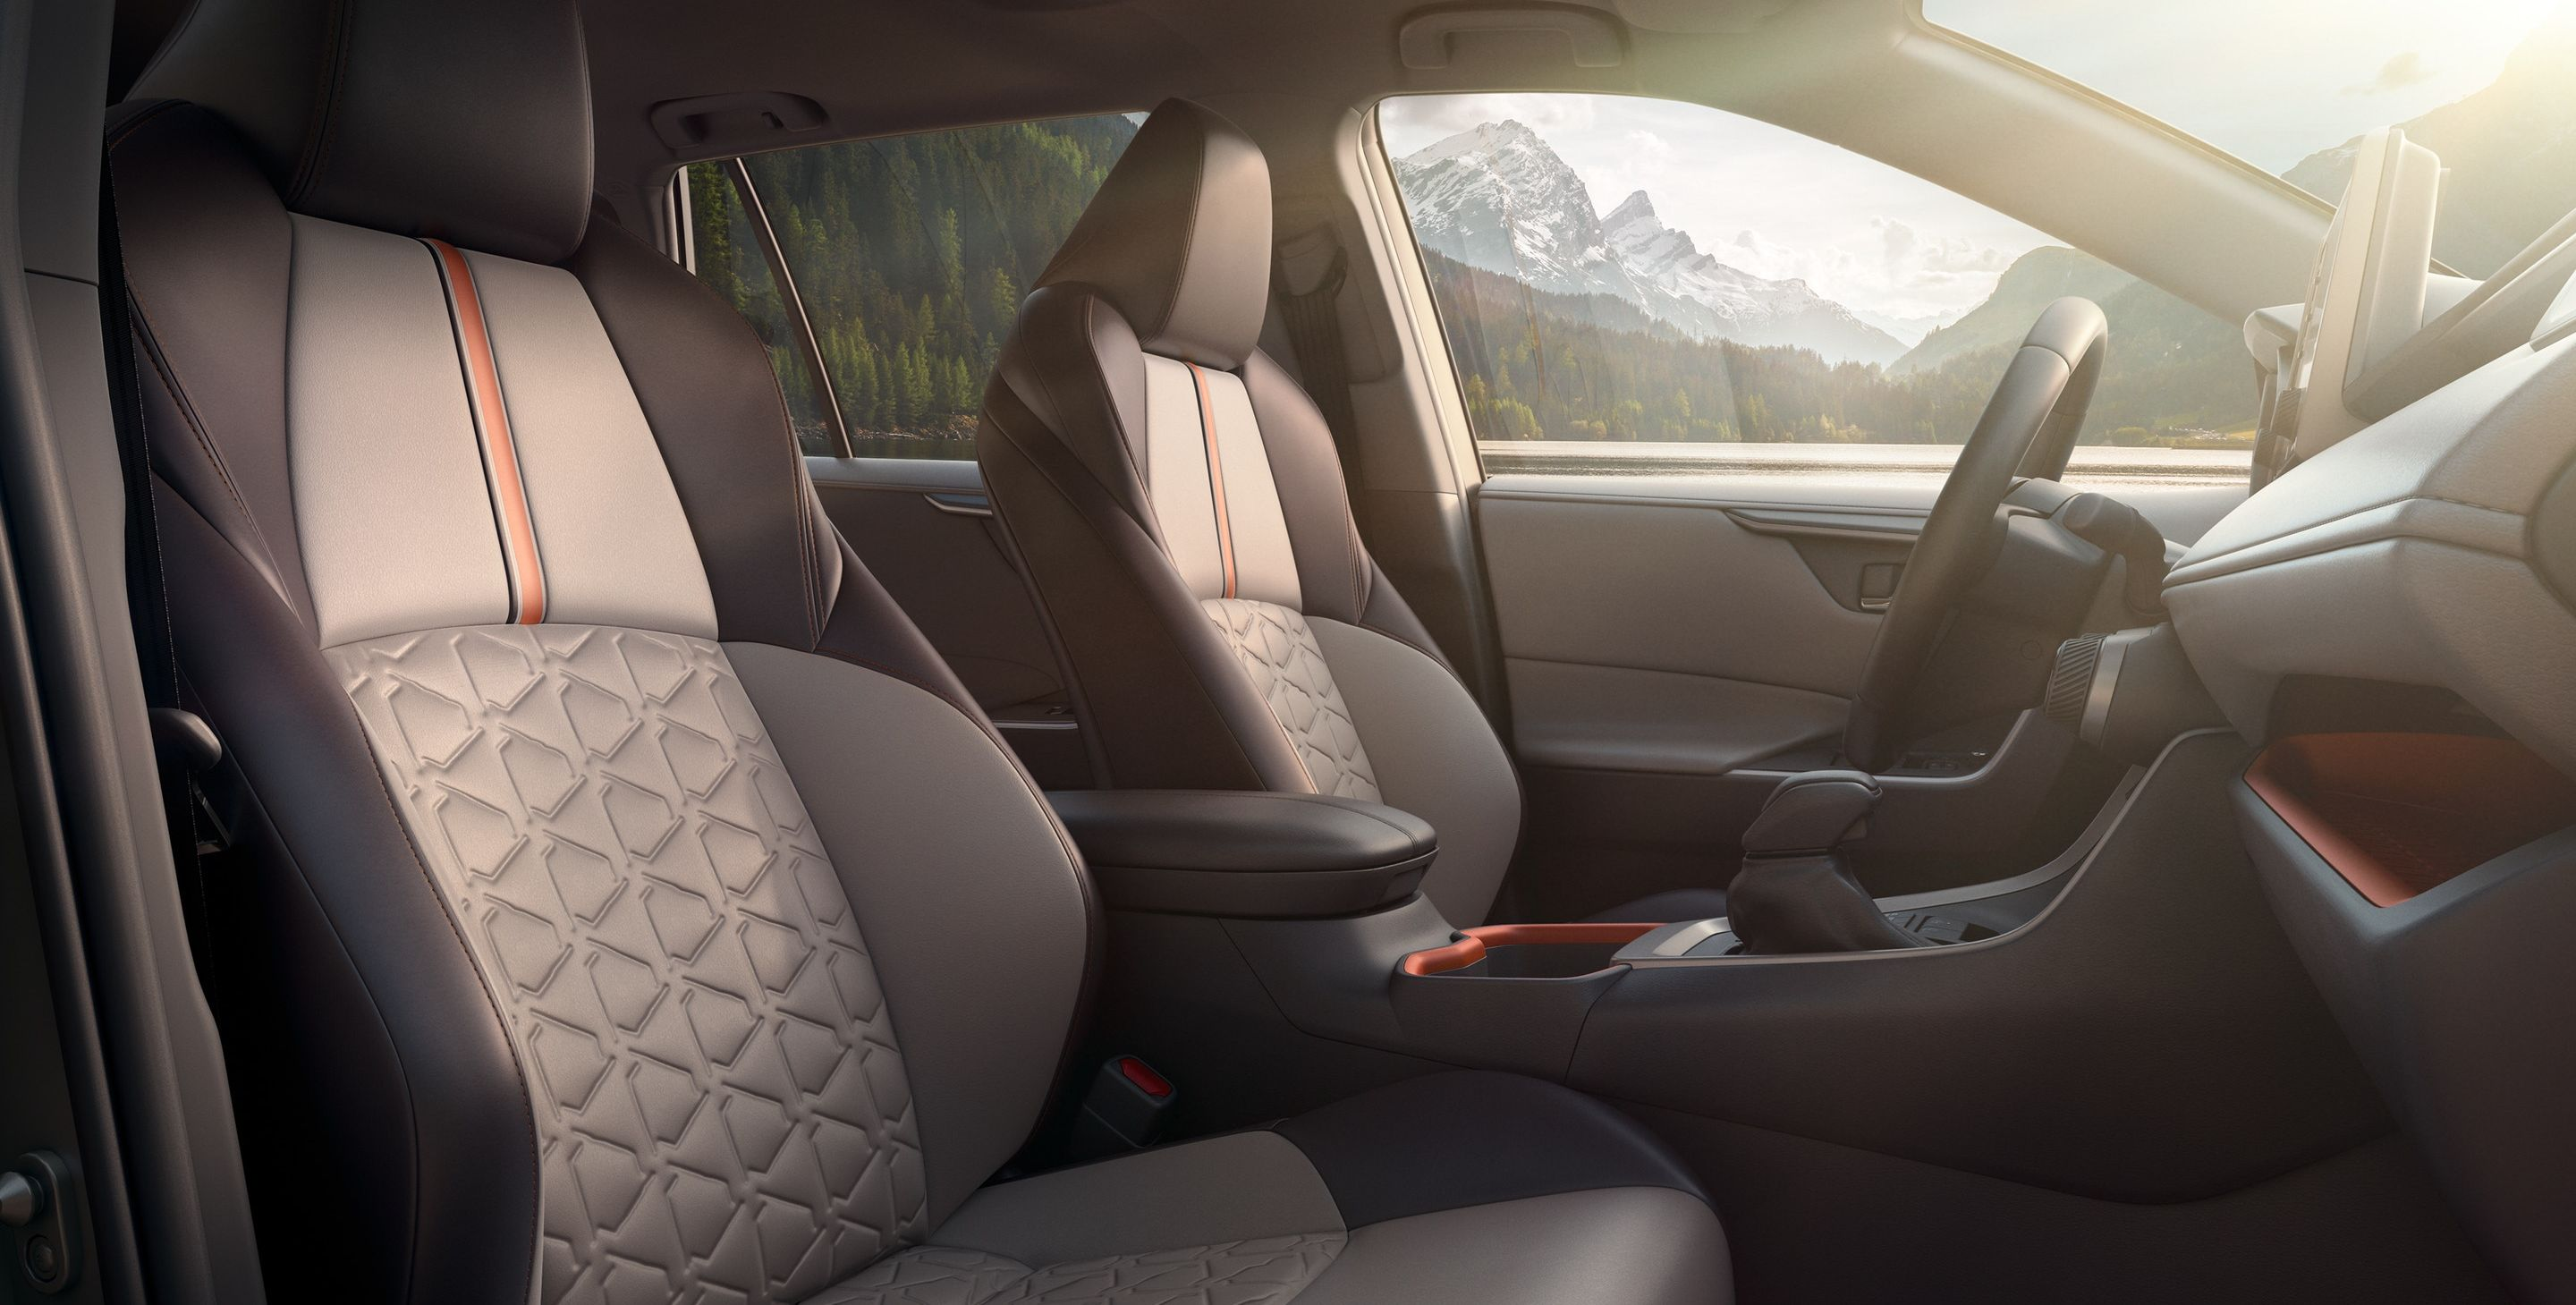 Stylish Interior of the 2019 RAV4